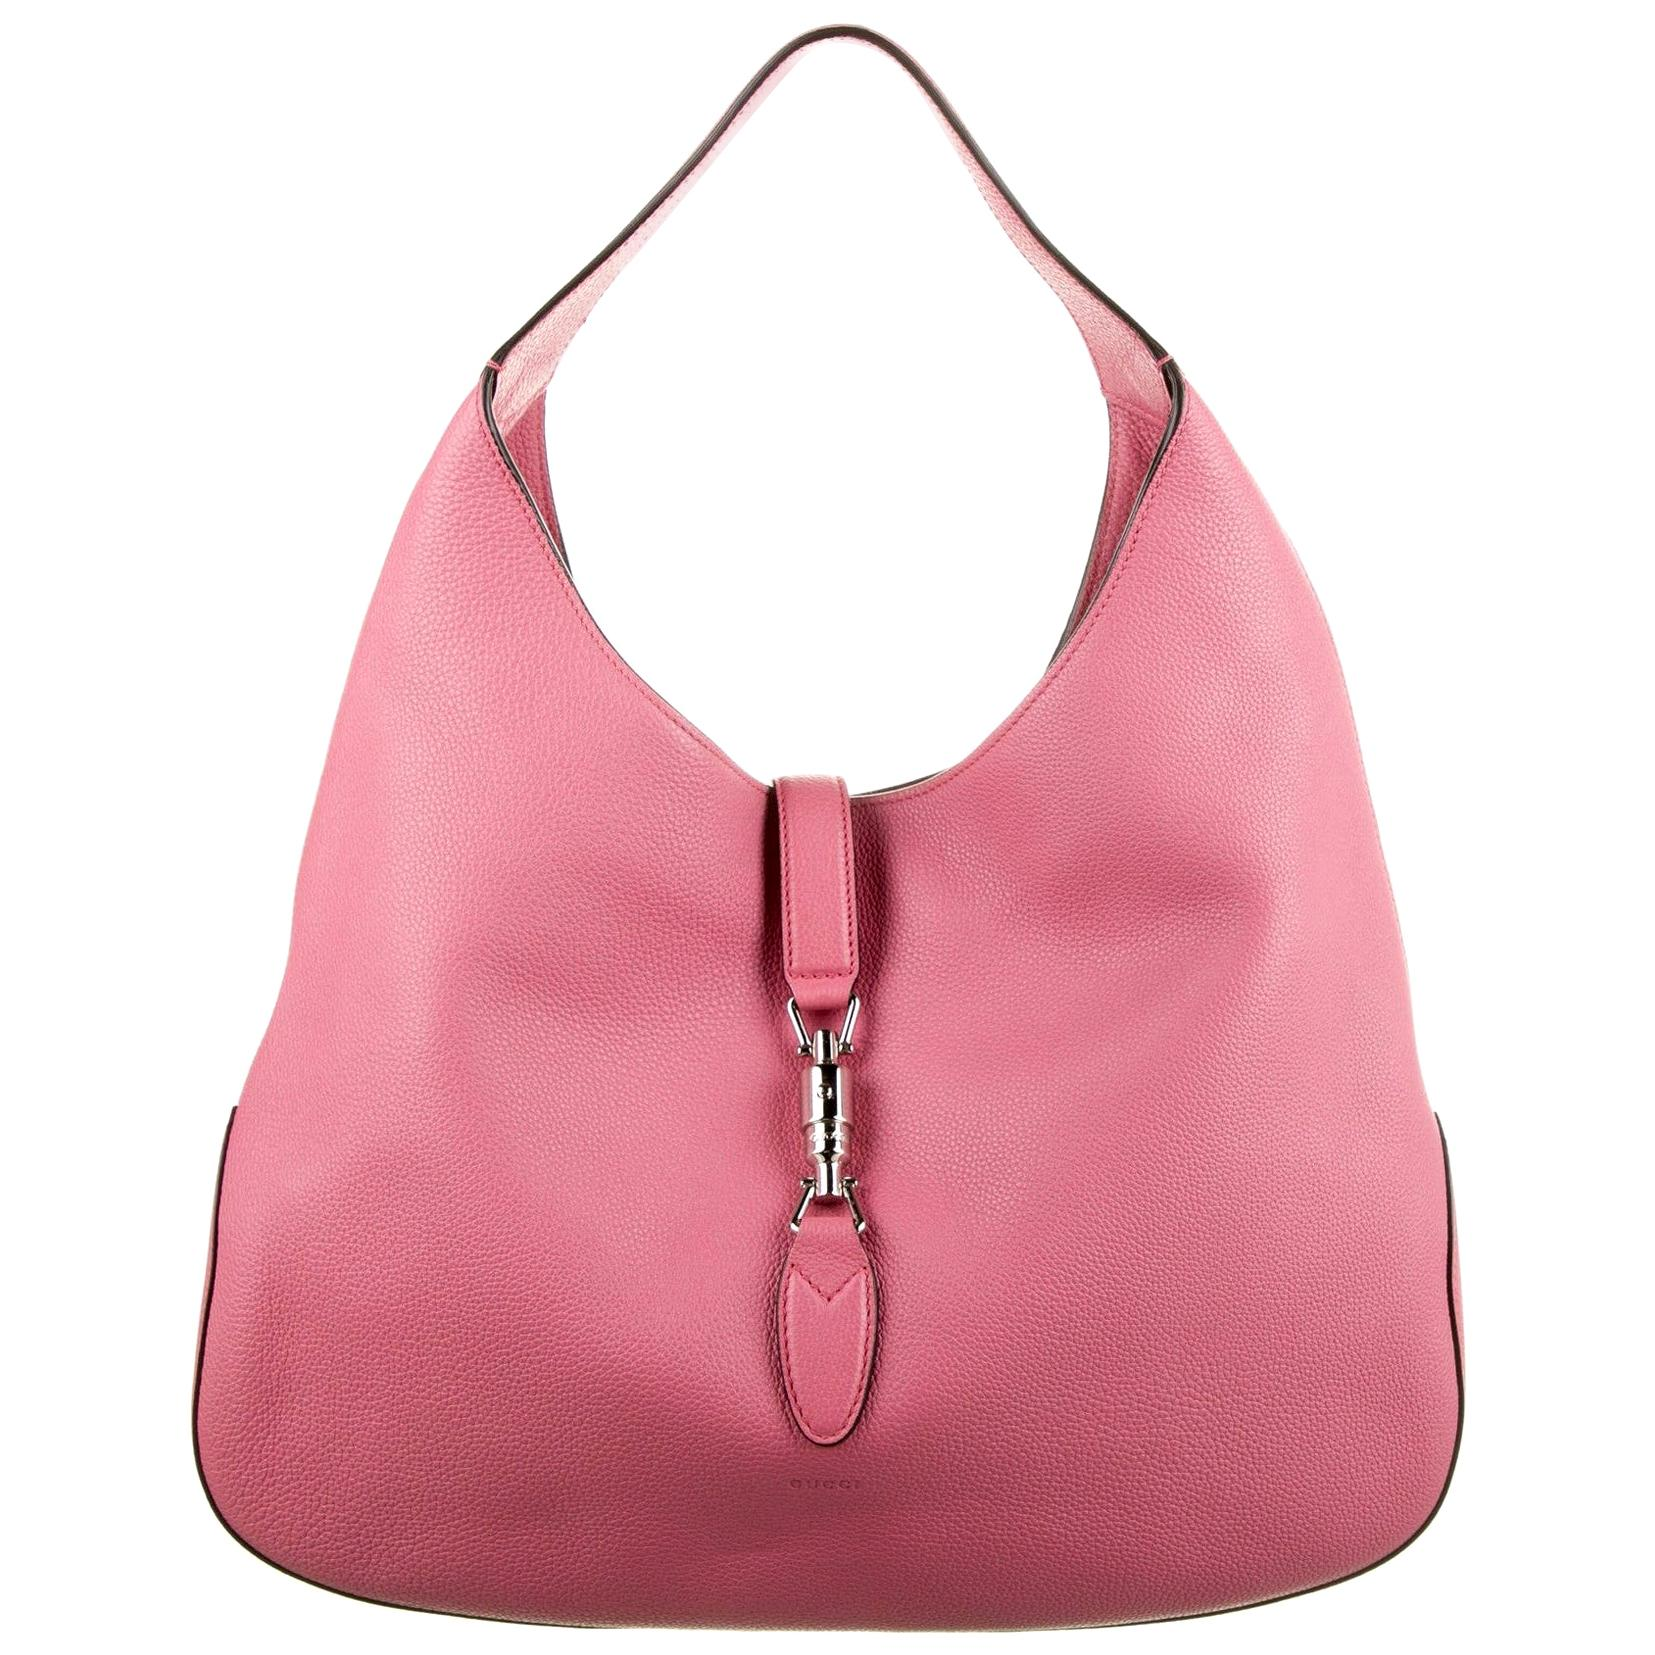 New With Tags Gucci Extra Large Pink Leather Jackie O Runway Bag $3595 Fall 2014